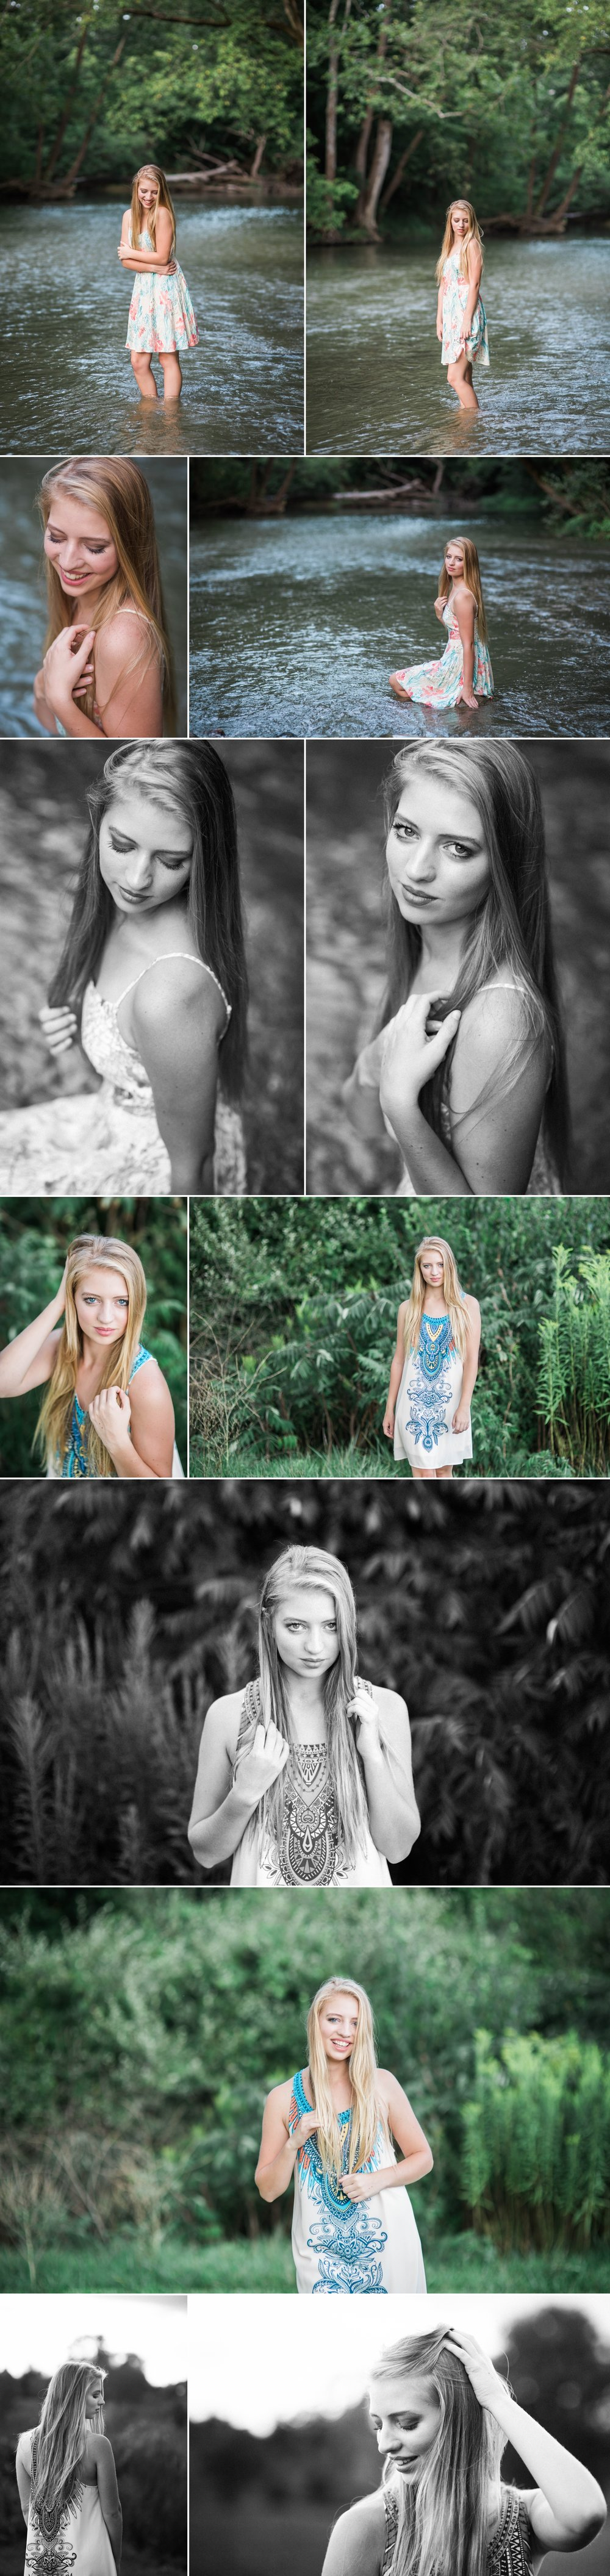 senior-senior portrait-river portrait- fort wayne indiana - 4